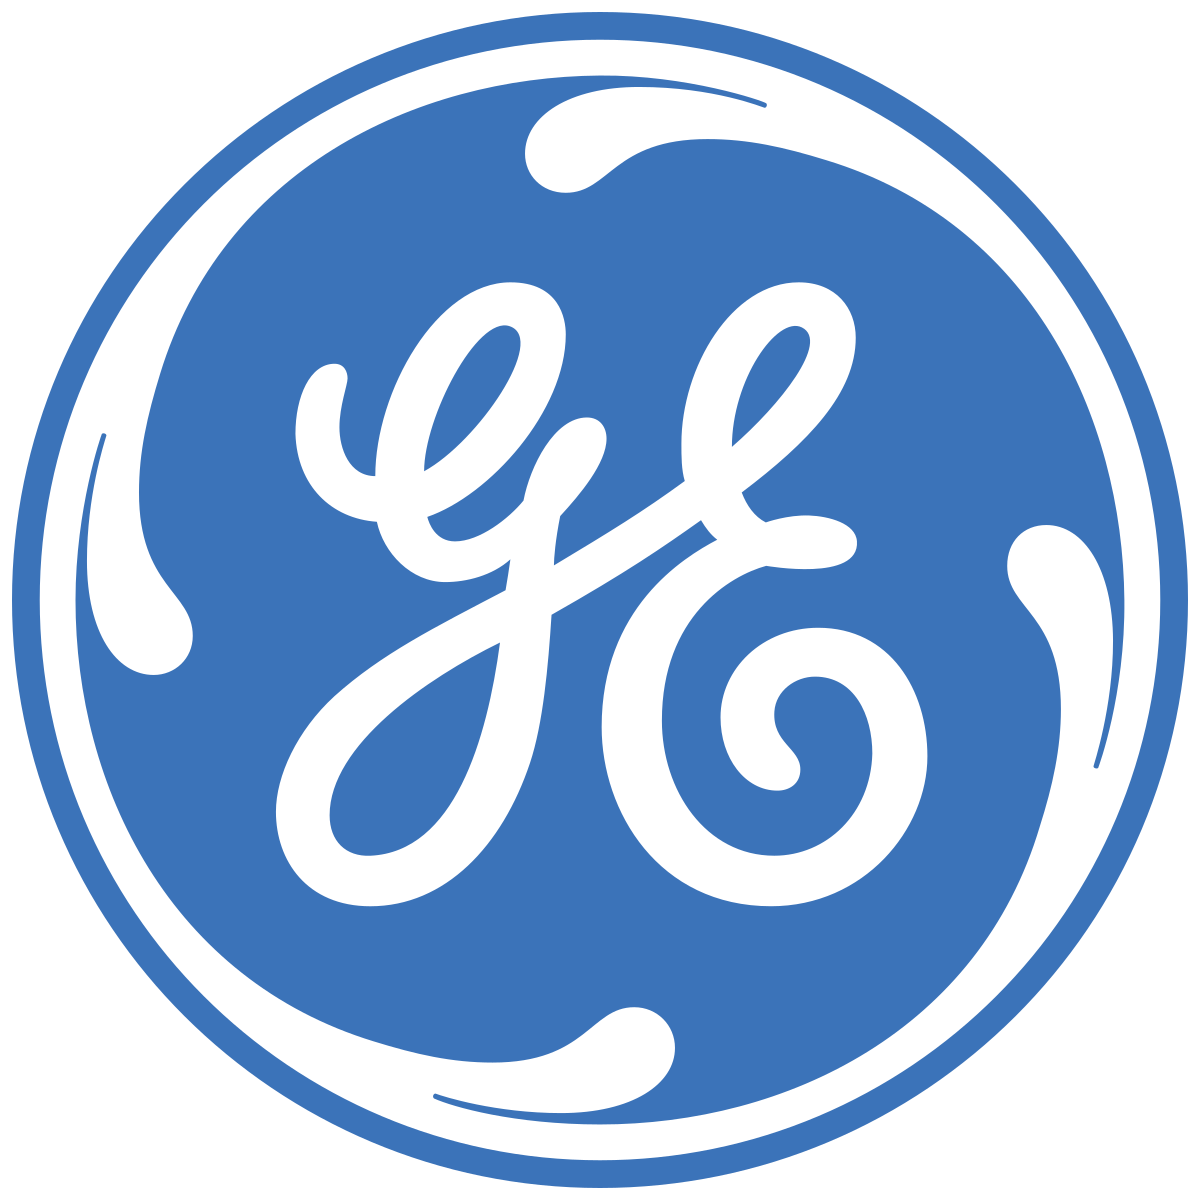 Logo General Electric Company